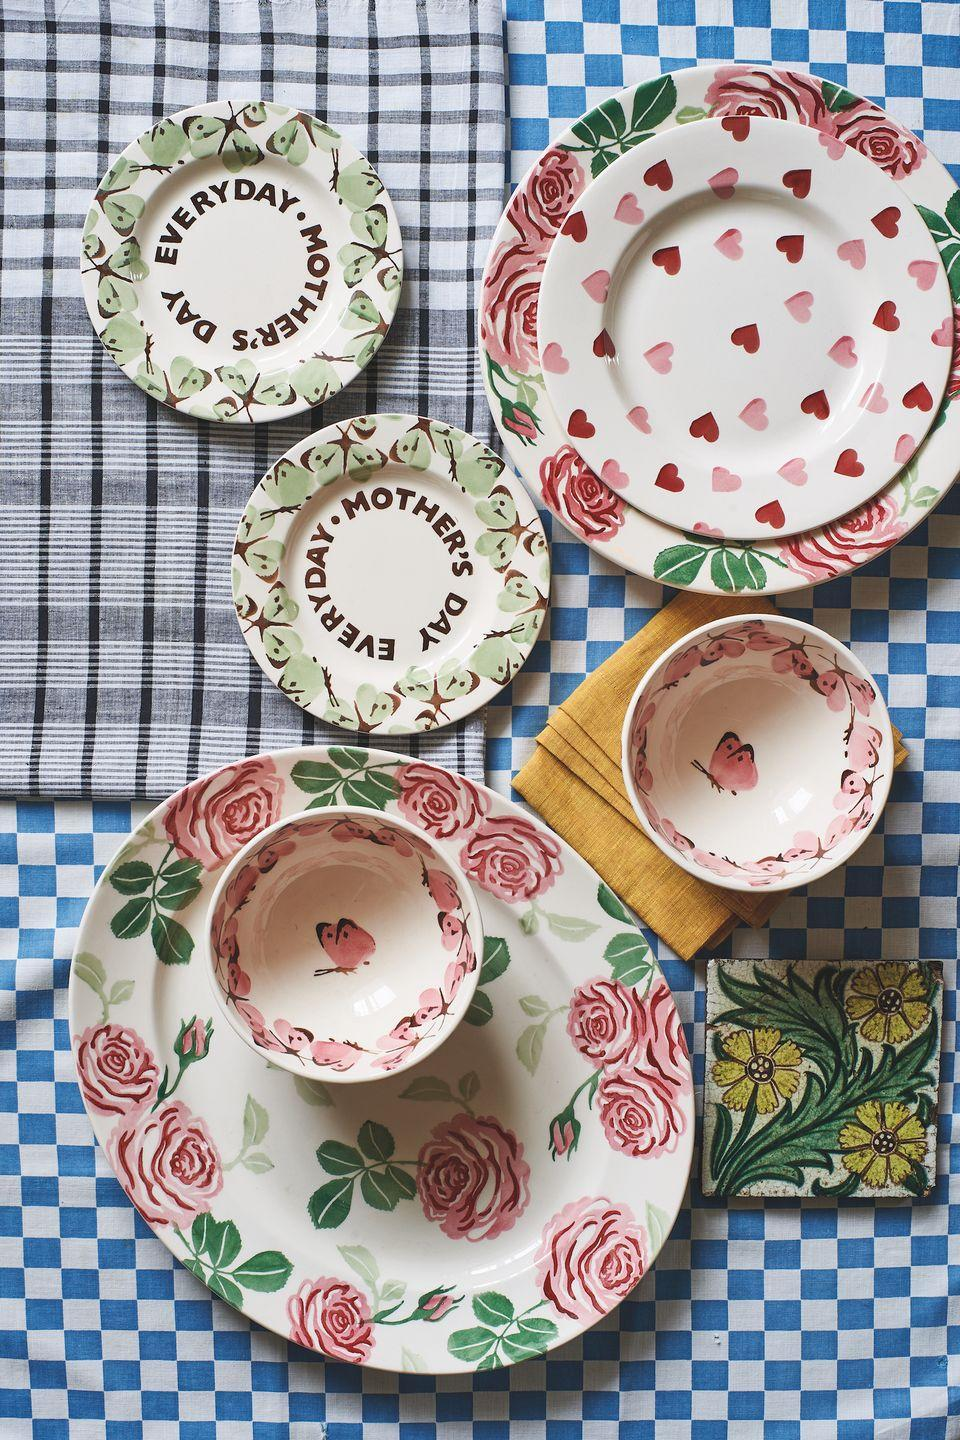 """<p>Serve up a mouthwatering treat with the new selection of plates. Available in a variety of different sizes, you'll discover something for every occasion. </p><p><a class=""""link rapid-noclick-resp"""" href=""""https://go.redirectingat.com?id=127X1599956&url=https%3A%2F%2Fwww.emmabridgewater.co.uk%2Fcollections%2Fnew&sref=https%3A%2F%2Fwww.countryliving.com%2Fuk%2Fhomes-interiors%2Finteriors%2Fg35249240%2Femma-bridgewater-spring%2F"""" rel=""""nofollow noopener"""" target=""""_blank"""" data-ylk=""""slk:BUY NOW"""">BUY NOW</a></p>"""